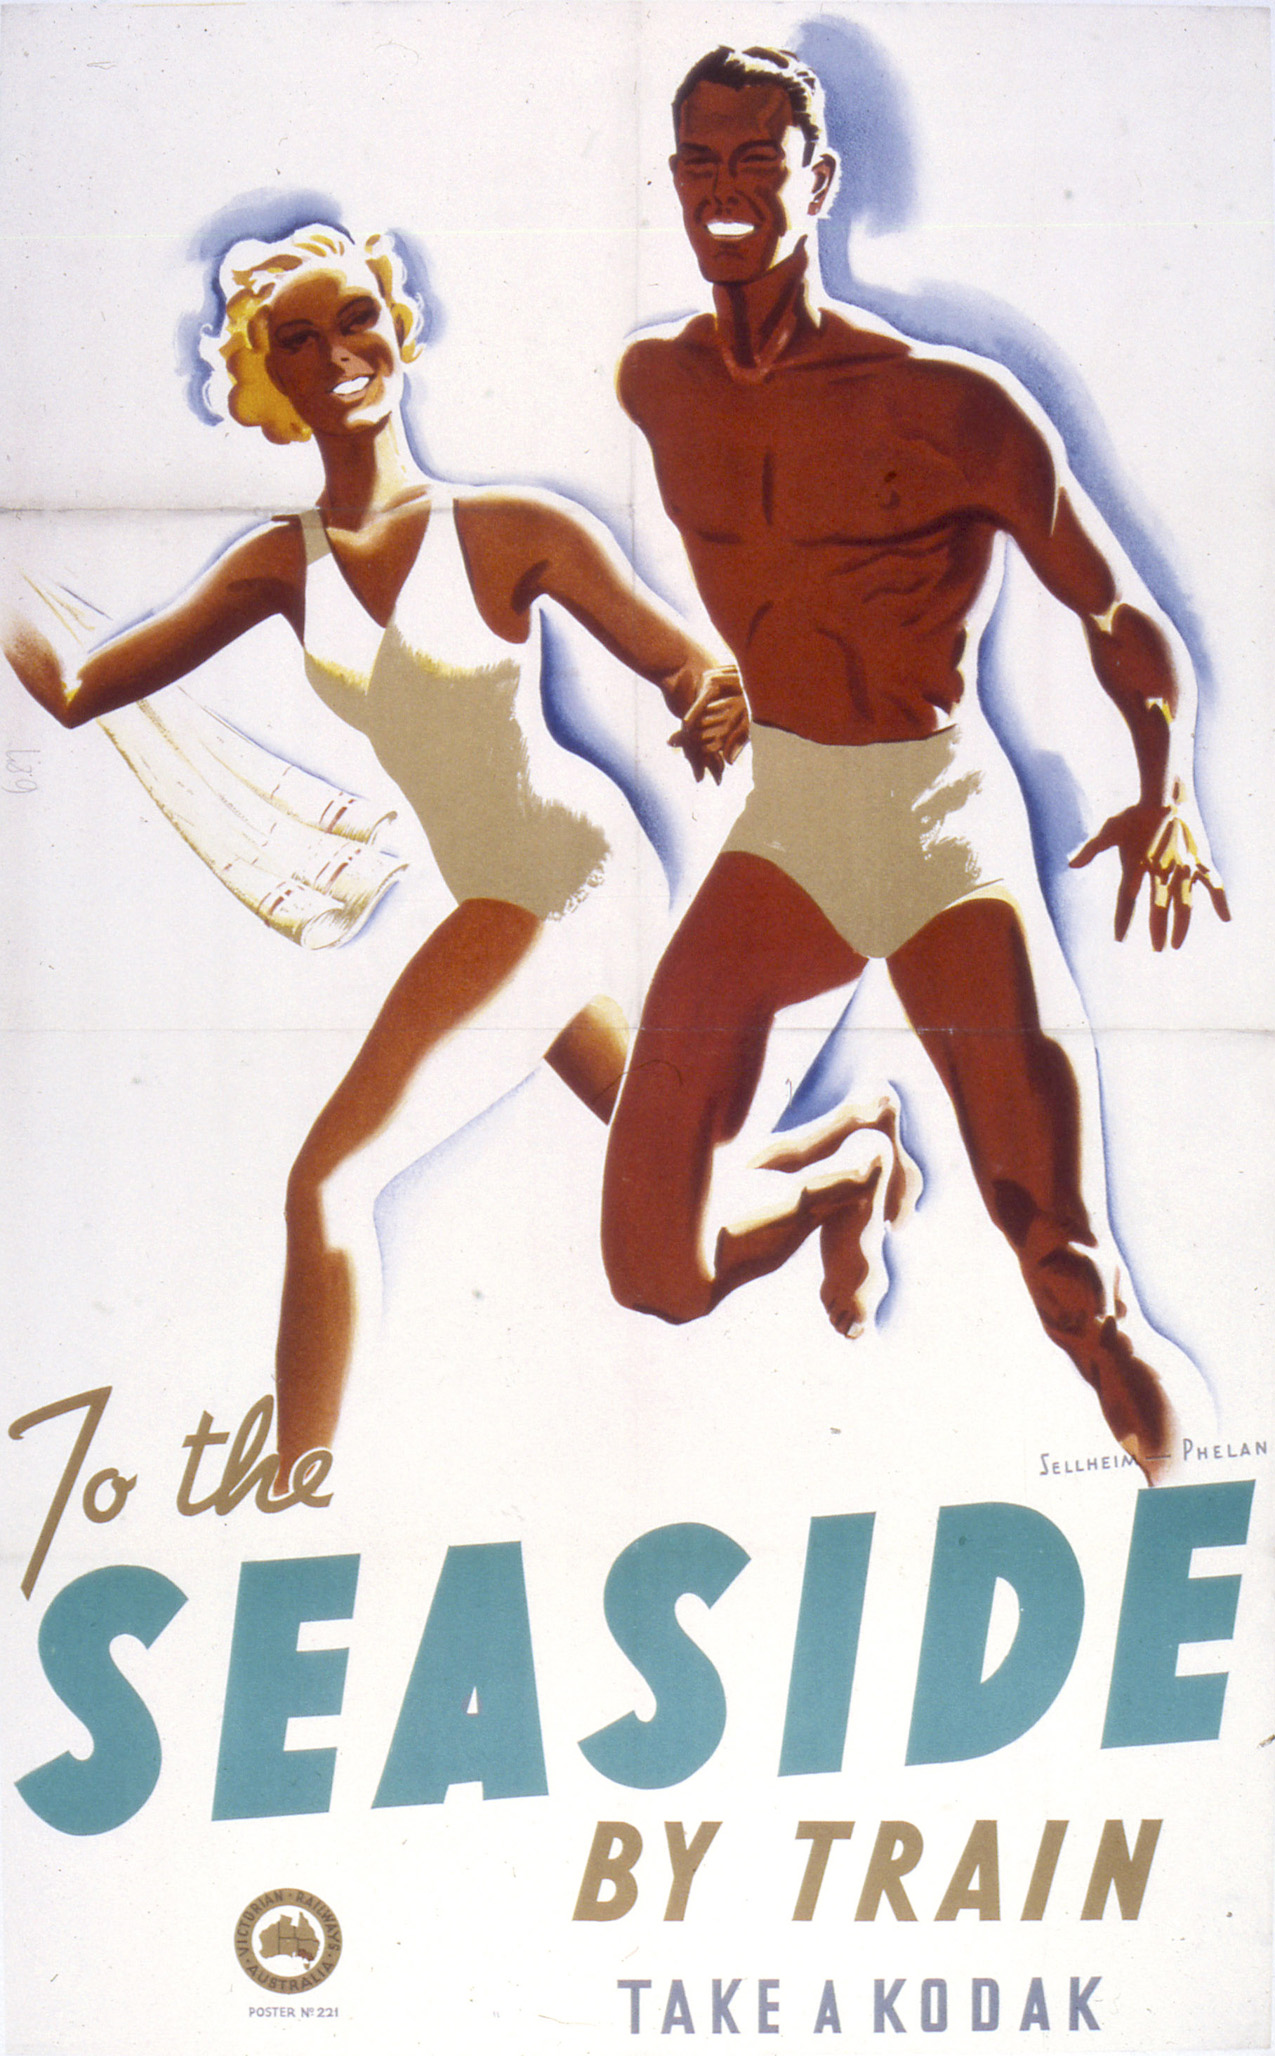 To the seaside by train poster by Gert Sellheim and Phelan